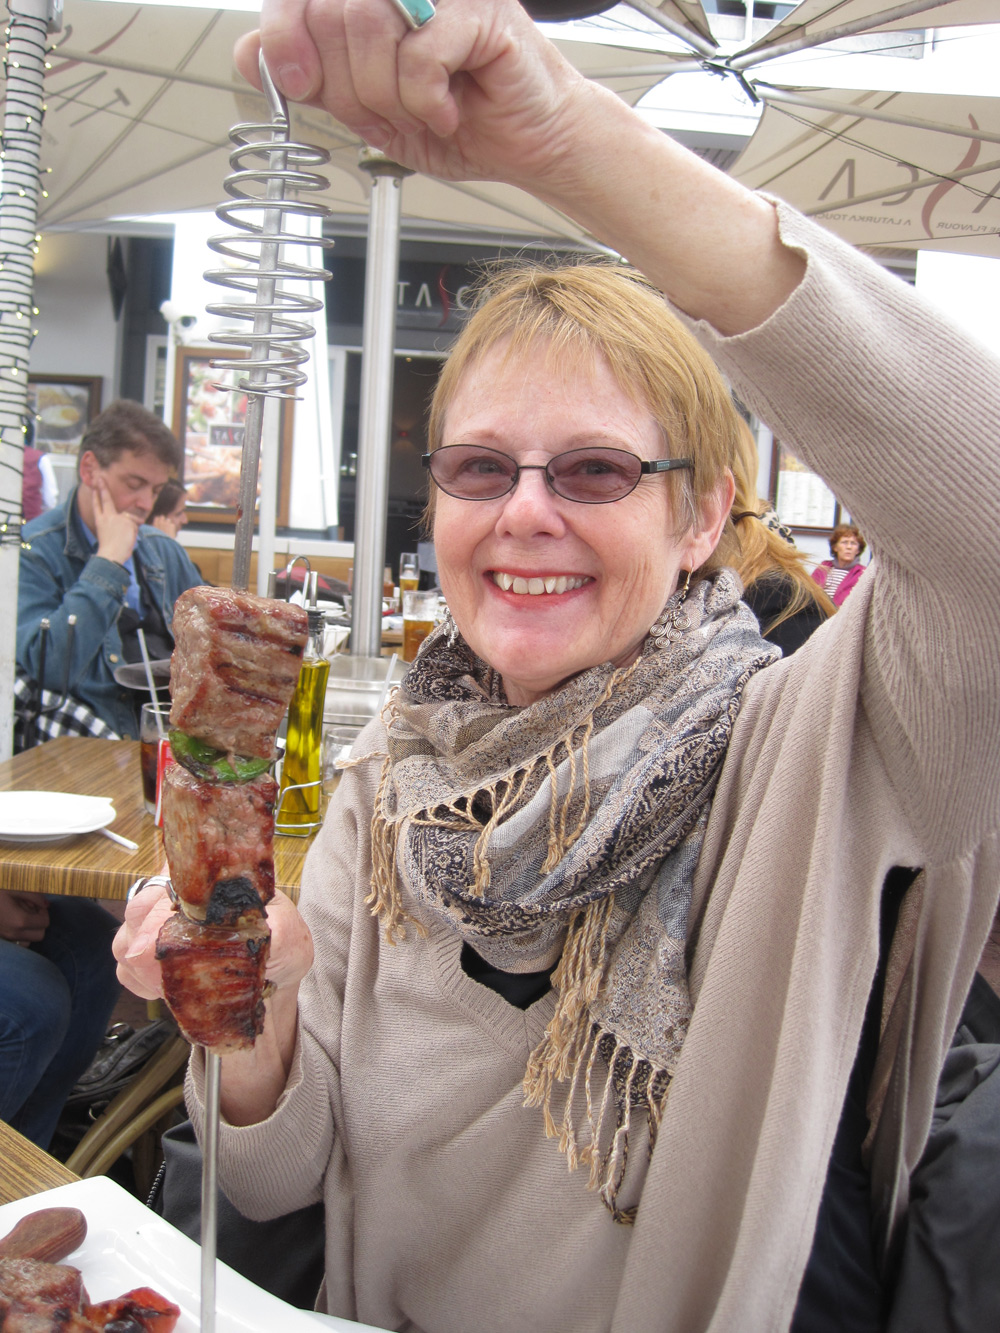 The artist, Karen Spencer, with a delicious kebab!